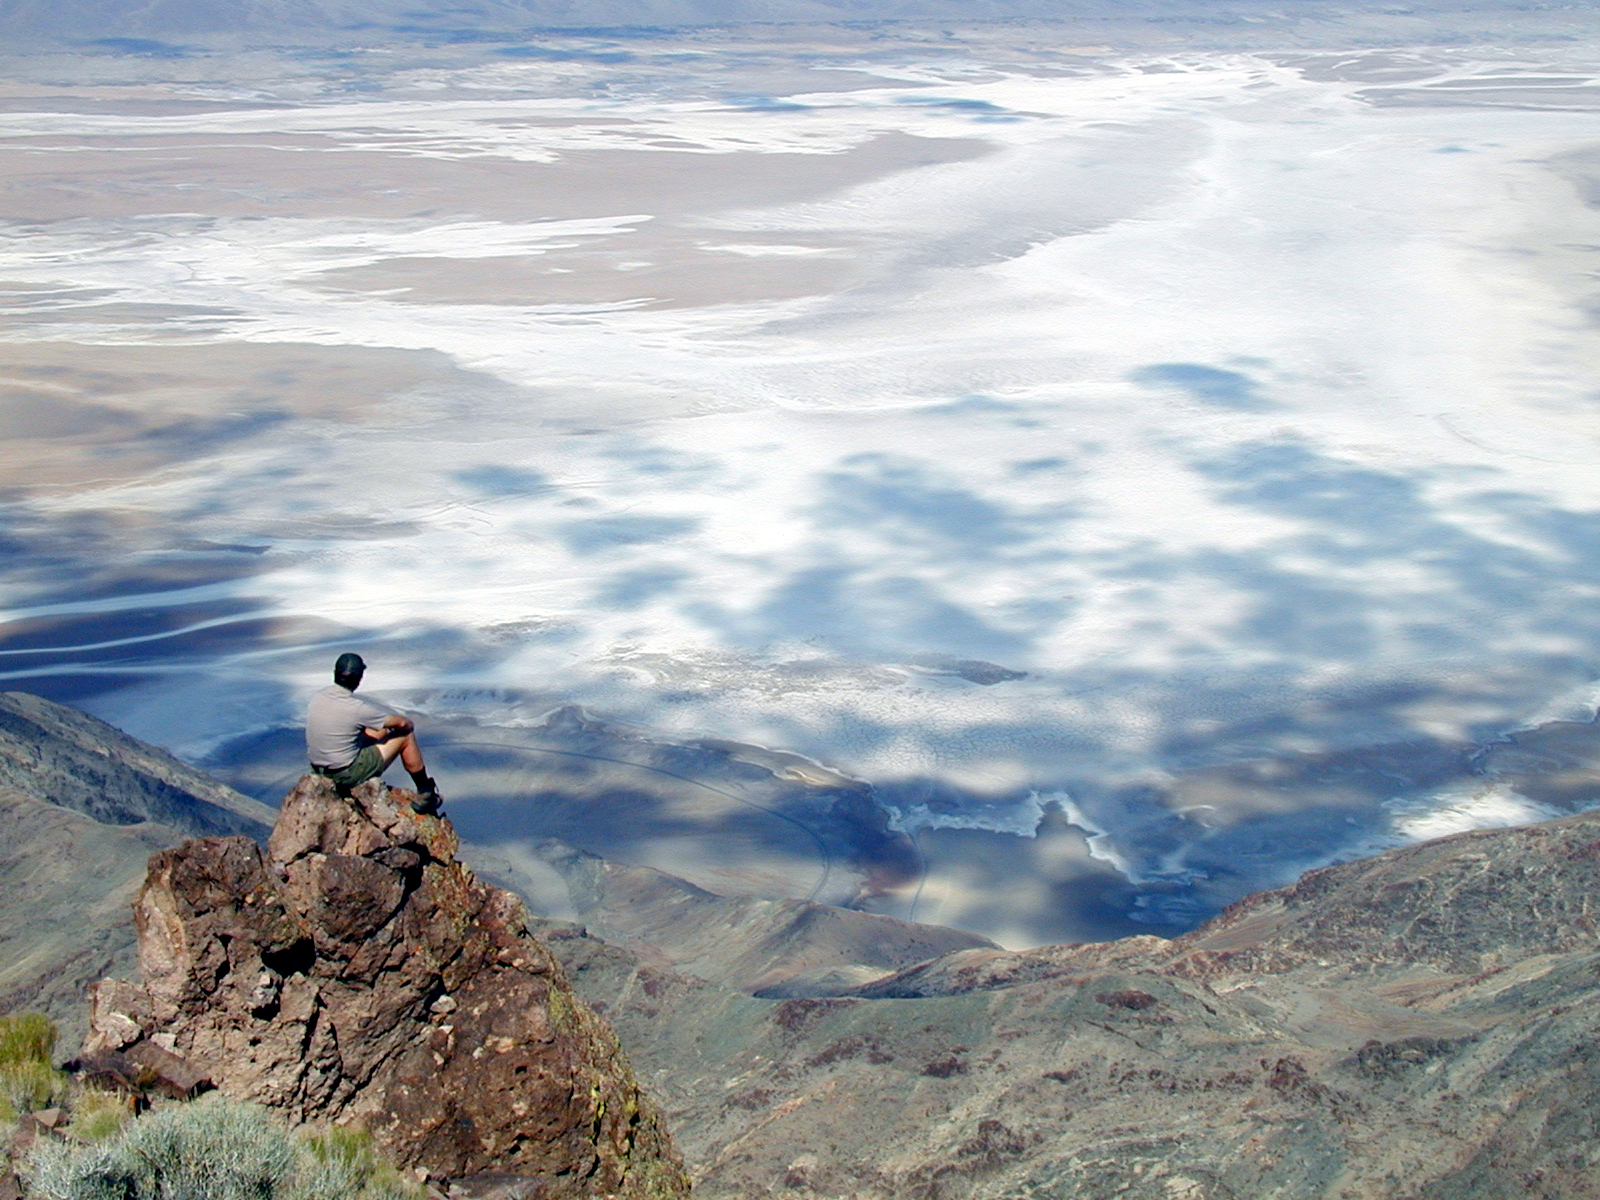 A park ranger sits on a rocky outcropping looking down on the white, flat salt flats.